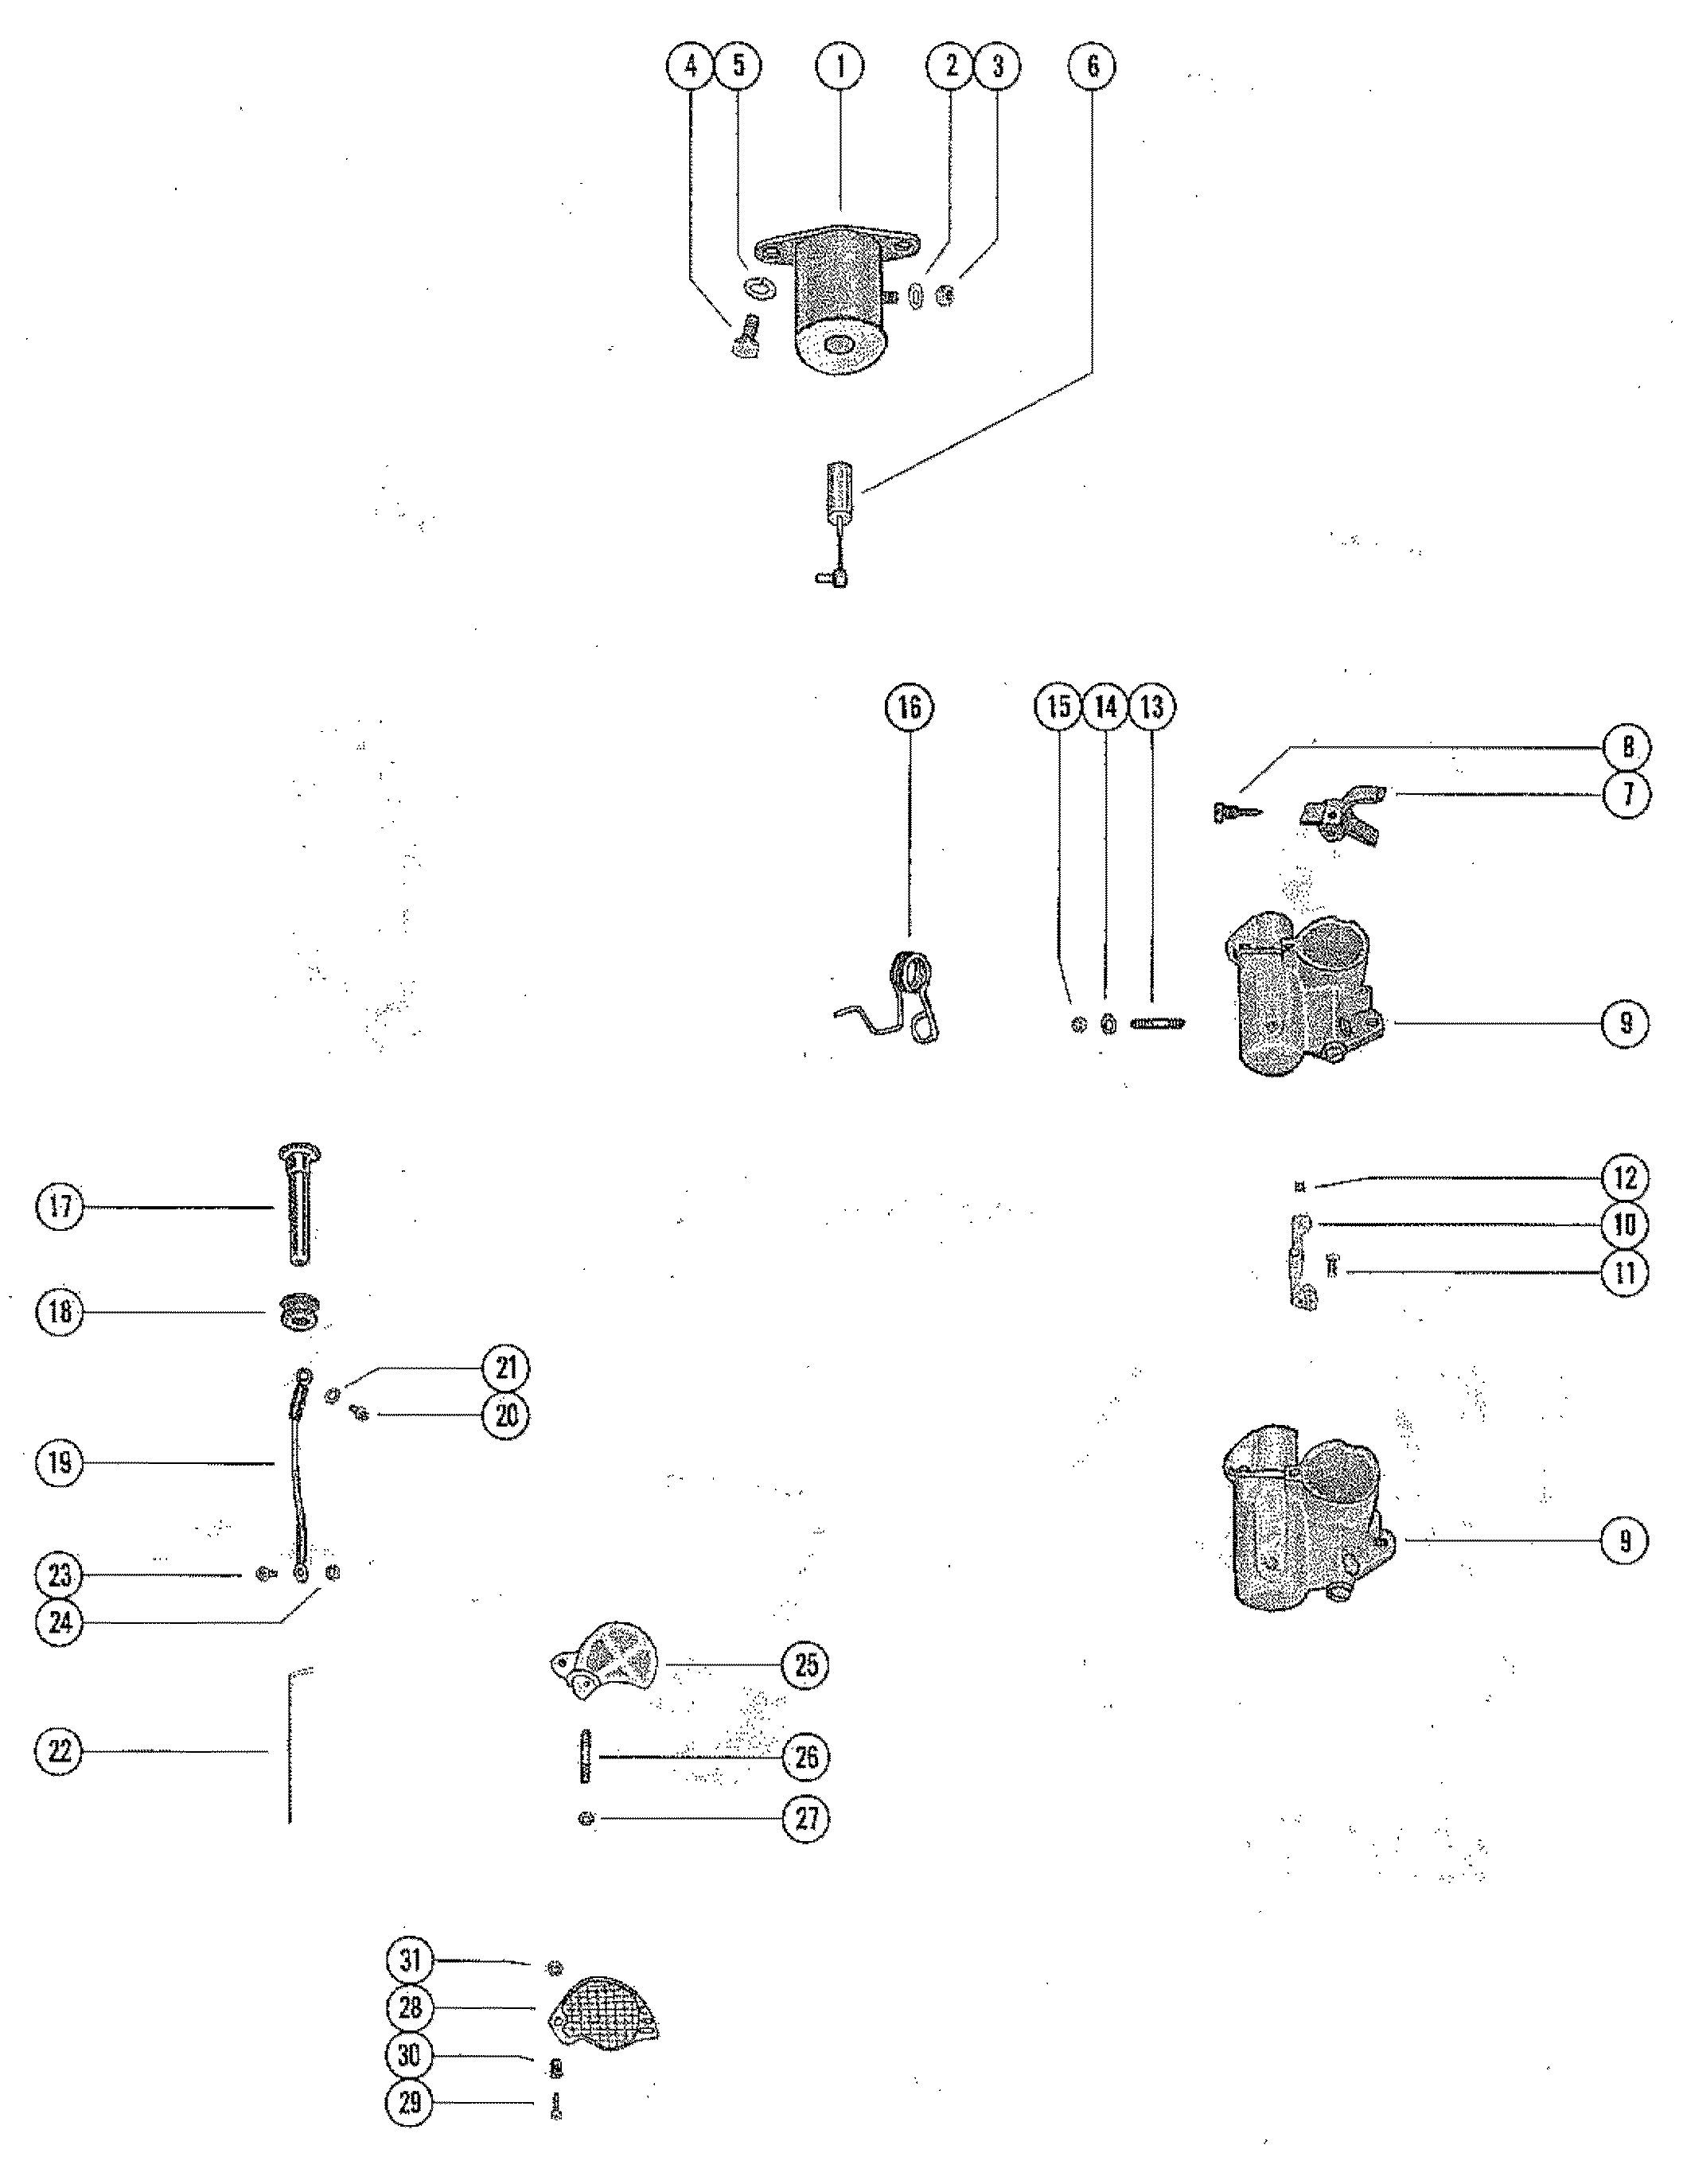 Kenwood Ddx512 Wiring Diagram Excelon 1990 Dodge B150 Ddx Diagrams Digital